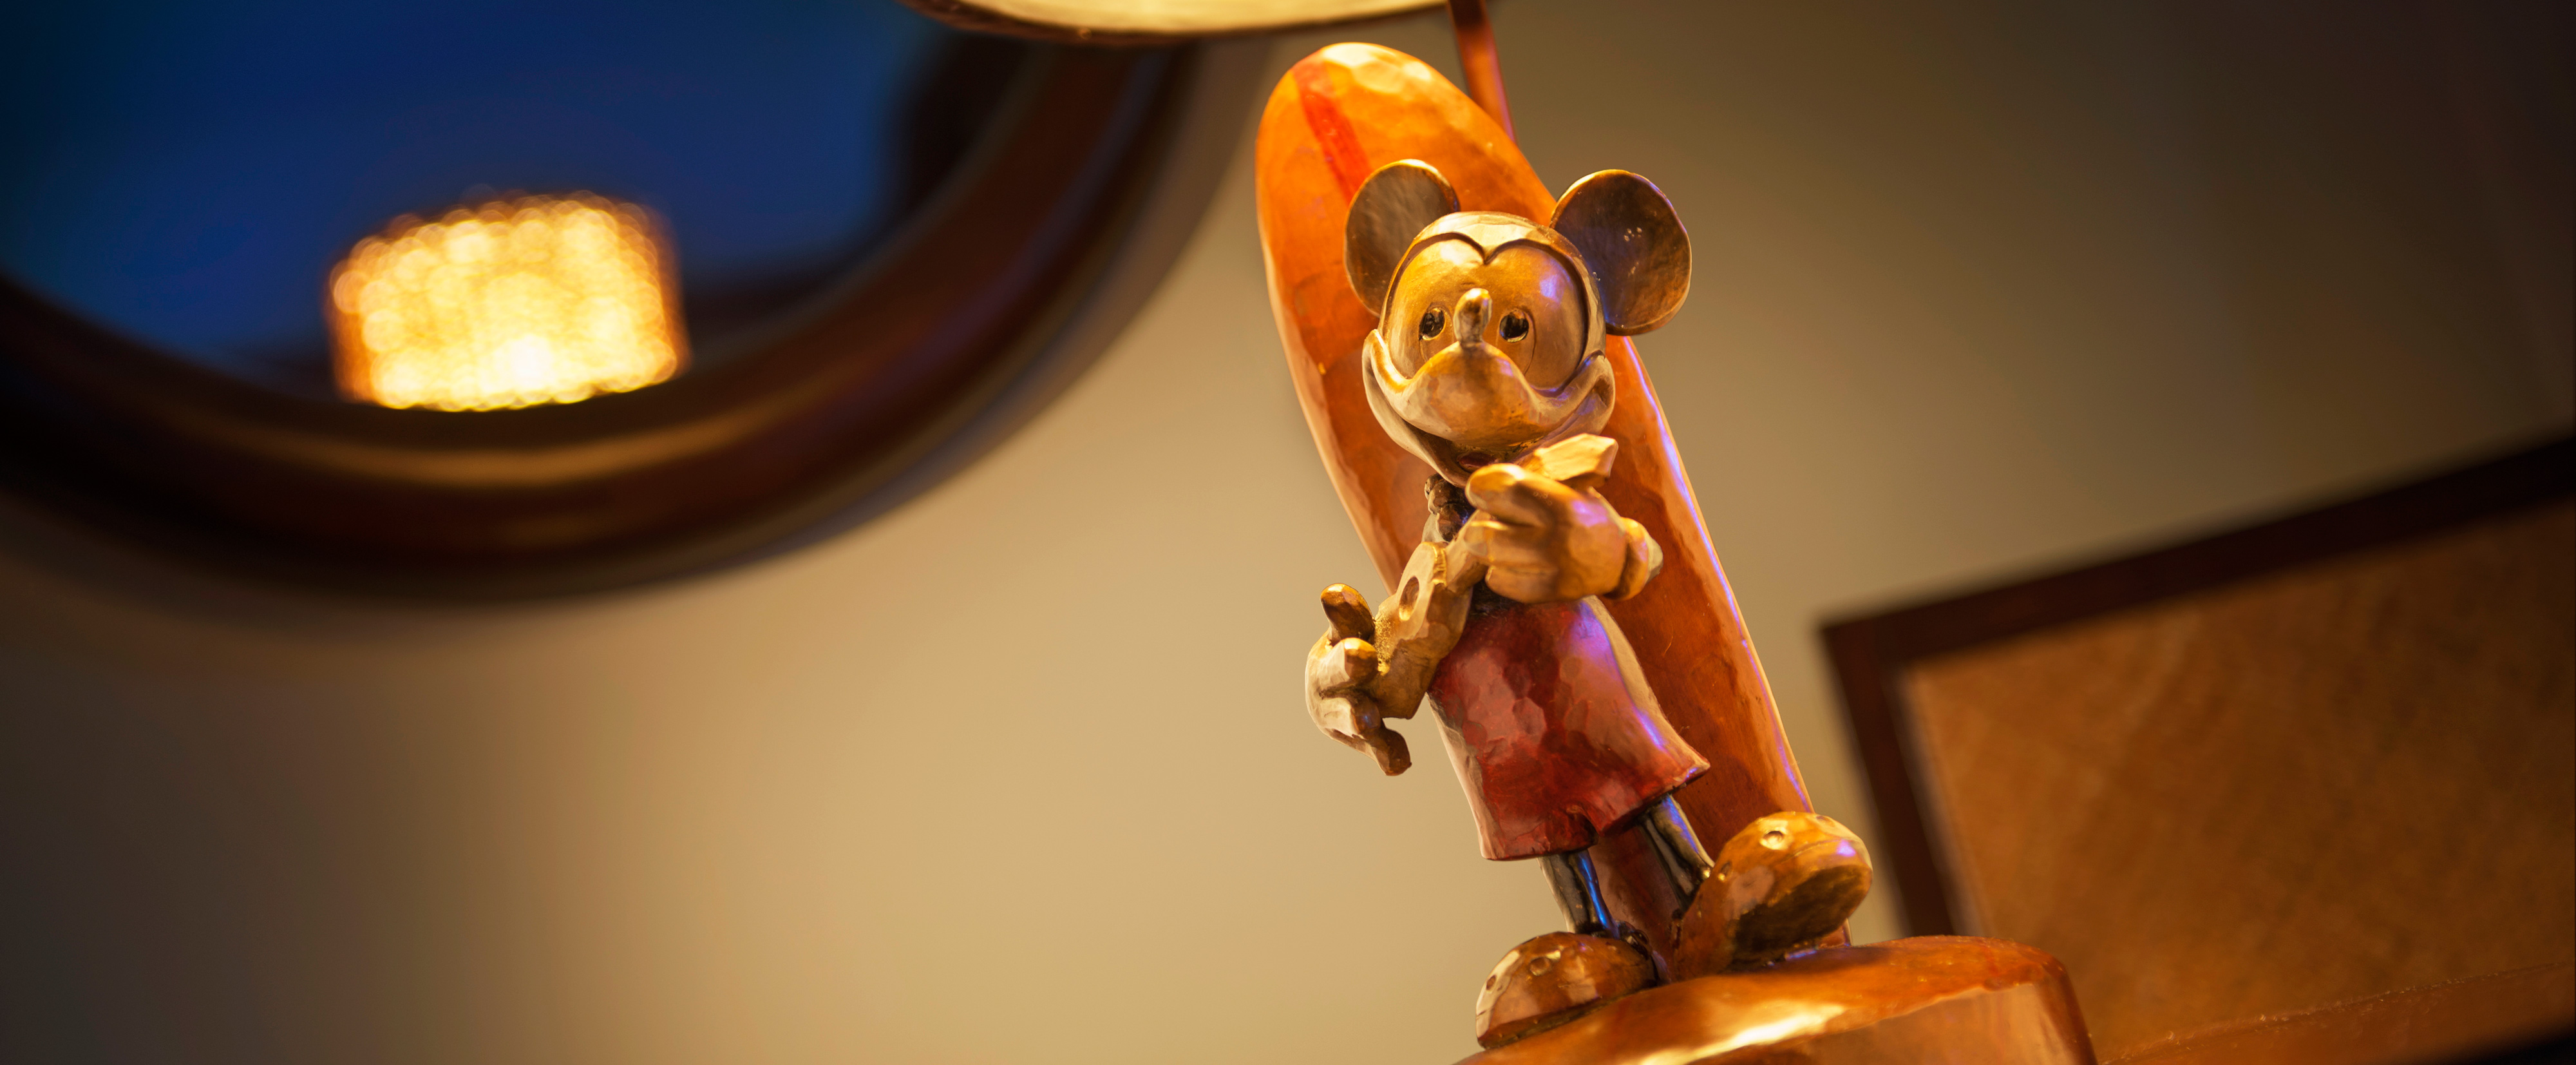 A wood-carved detail of Mickey with a ukulele and surfboard on the base of a lamp